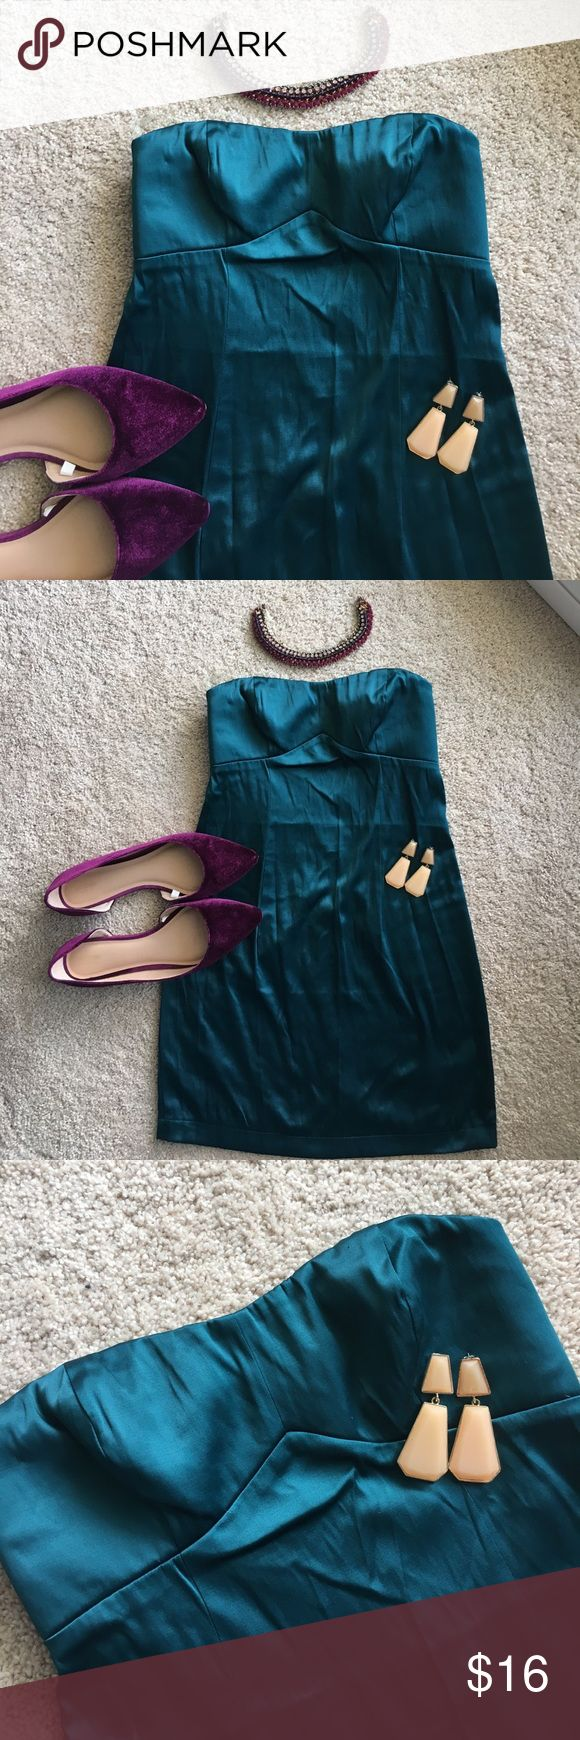 🔥Forever 21 Sweetheart Club Dress 👗 in Teal So sexy in person. This Forever 21 dress is a must have for any girl going out. Features a sweetheart neckline with the rubber gel grips around bust, and a slightly padded bust to allow you to wear by itself. Slight slit in the back and plenty of stretch. Sized Small. Only tried on never worn out. Has two barely noticeable pills on the top. See closeup photo. I had to hunt to find it, so it is not noticeable. Is a teal/hunter green color…